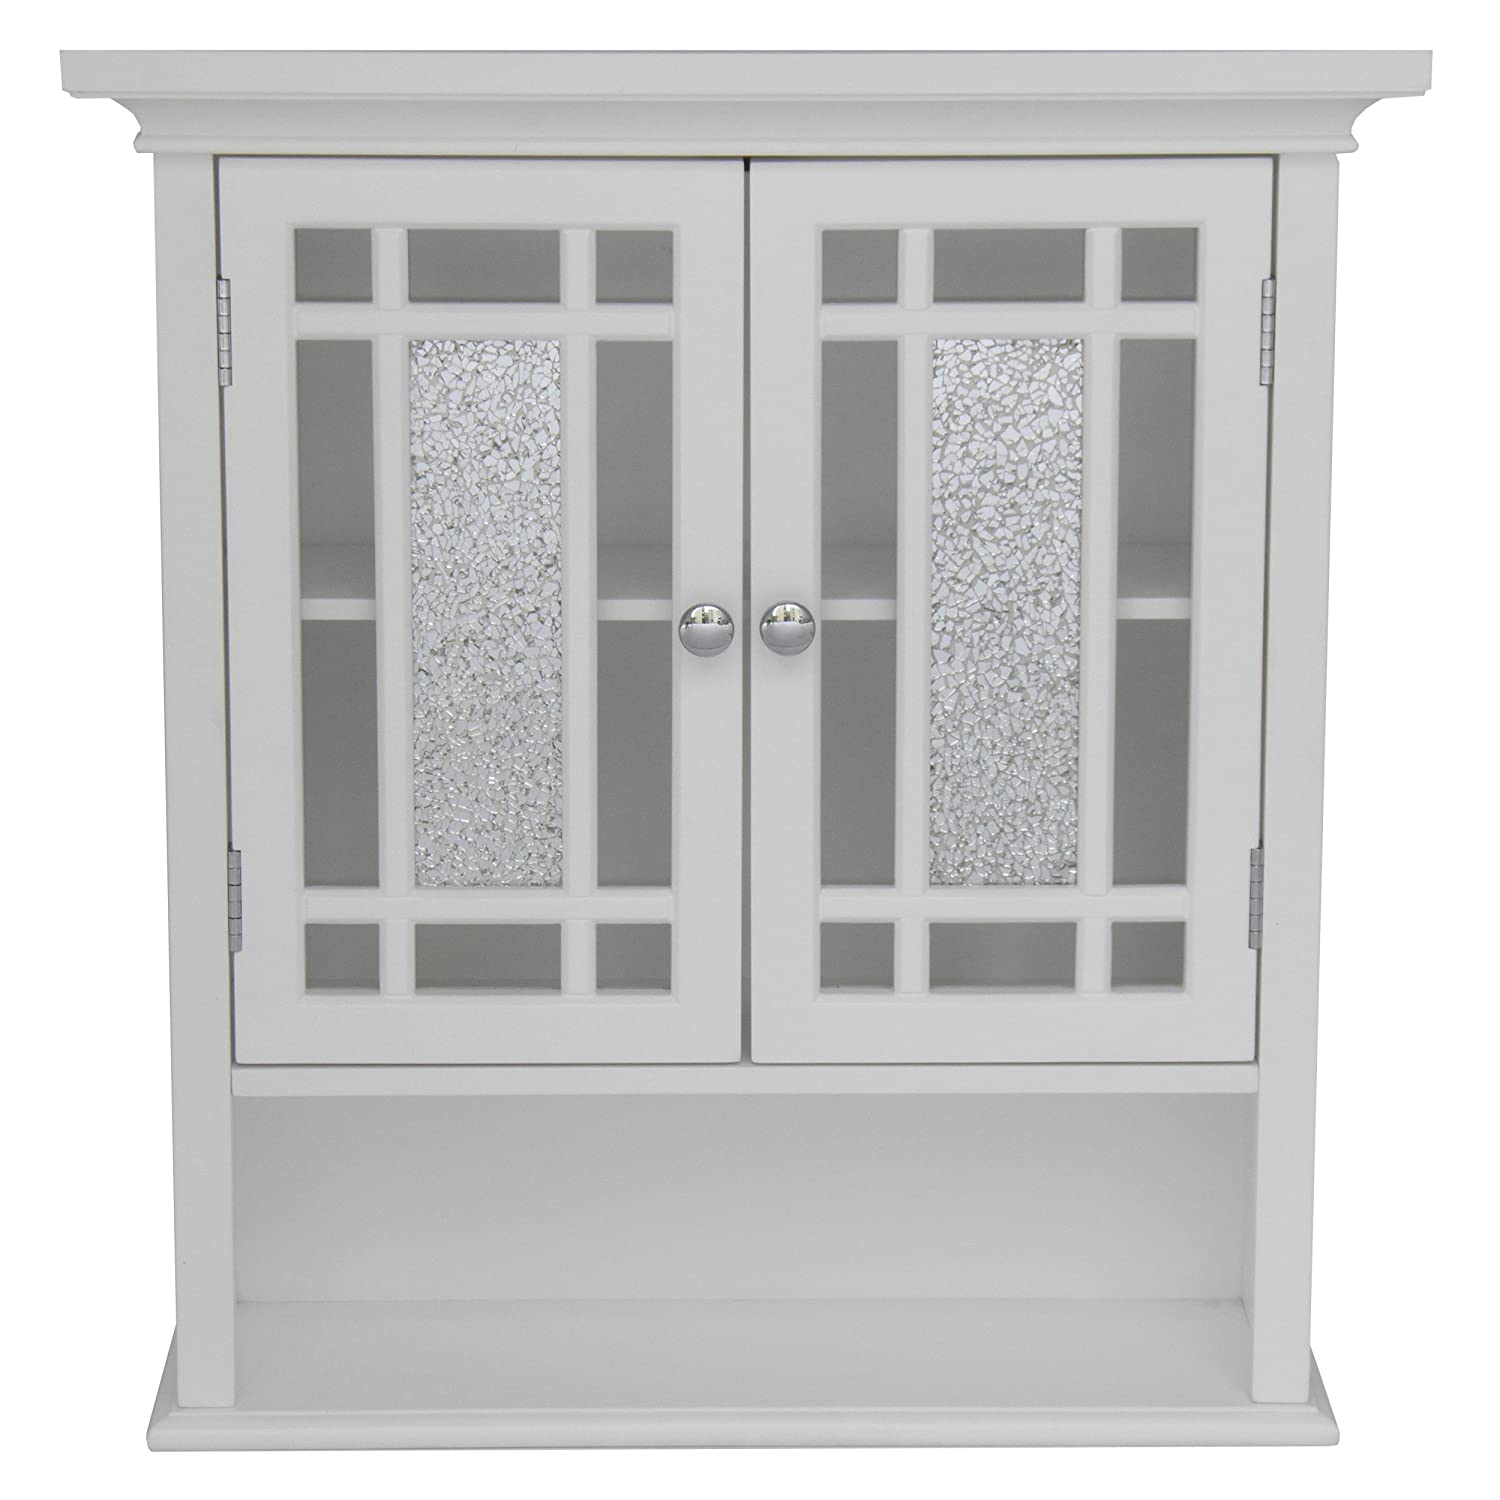 storage shaker cabinet furniture bathroom white itm drawer door style unit use multi